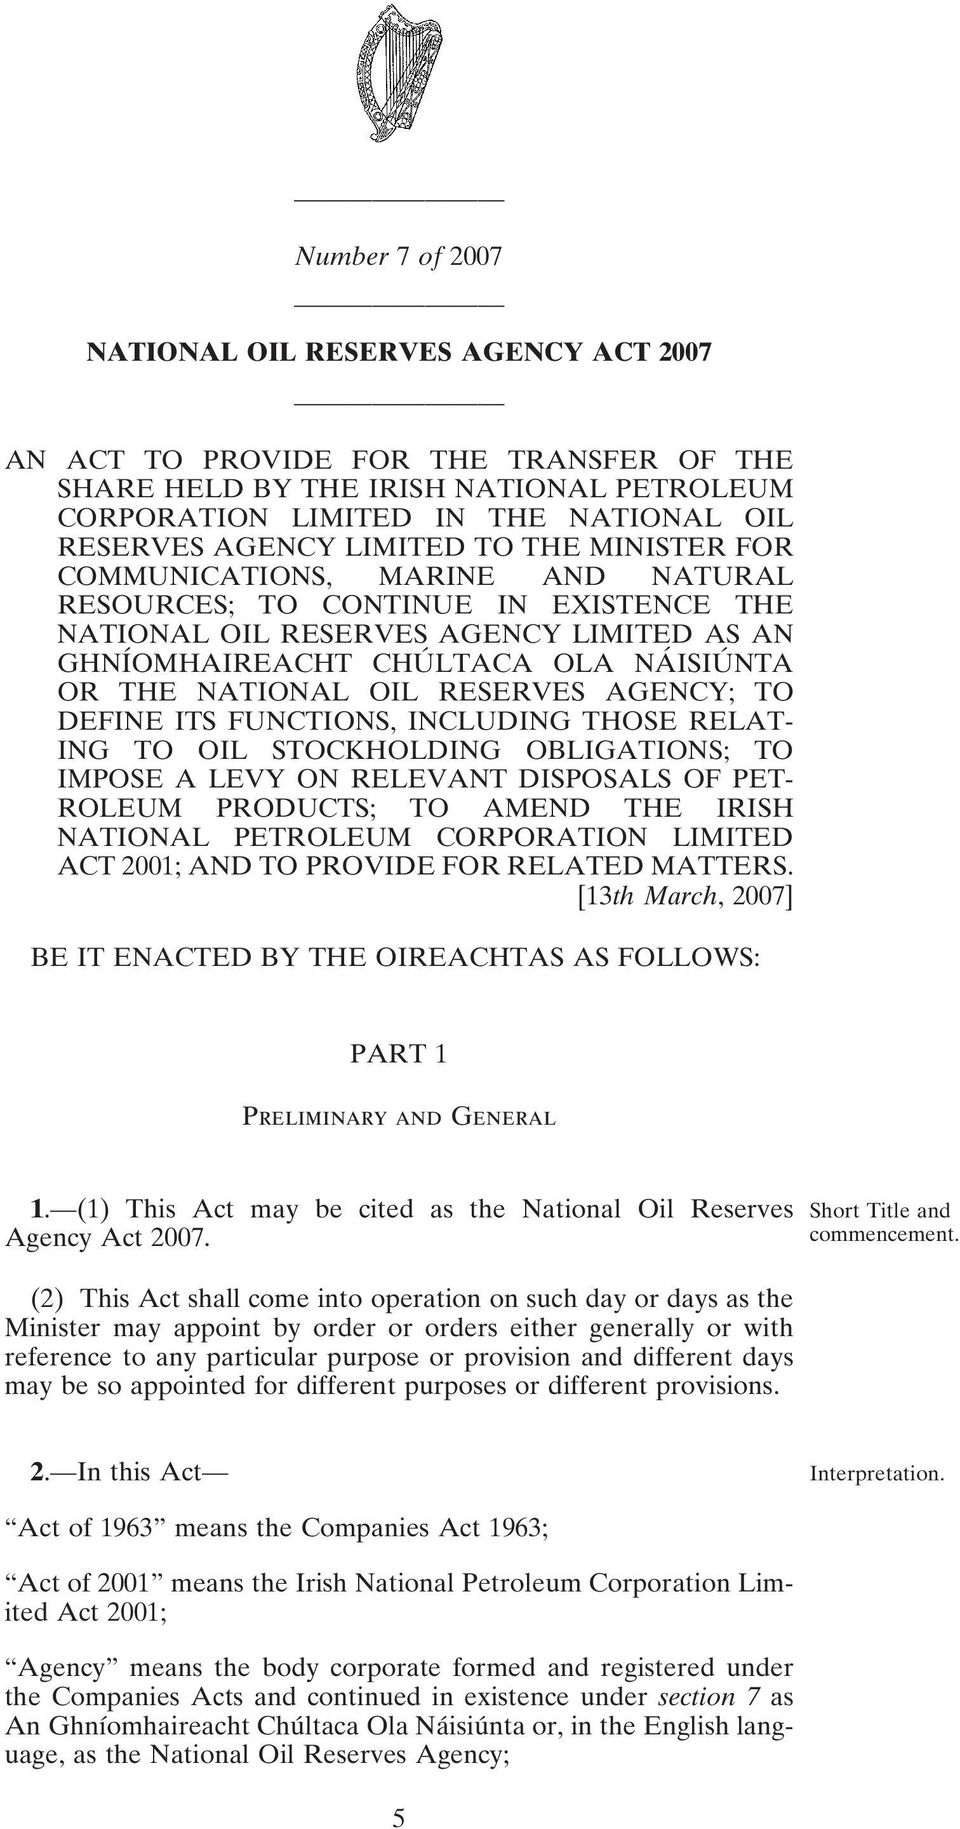 NATIONAL OIL RESERVES AGENCY; TO DEFINE ITS FUNCTIONS, INCLUDING THOSE RELAT- ING TO OIL STOCKHOLDING OBLIGATIONS; TO IMPOSE A LEVY ON RELEVANT DISPOSALS OF PET- ROLEUM PRODUCTS; TO AMEND THE IRISH